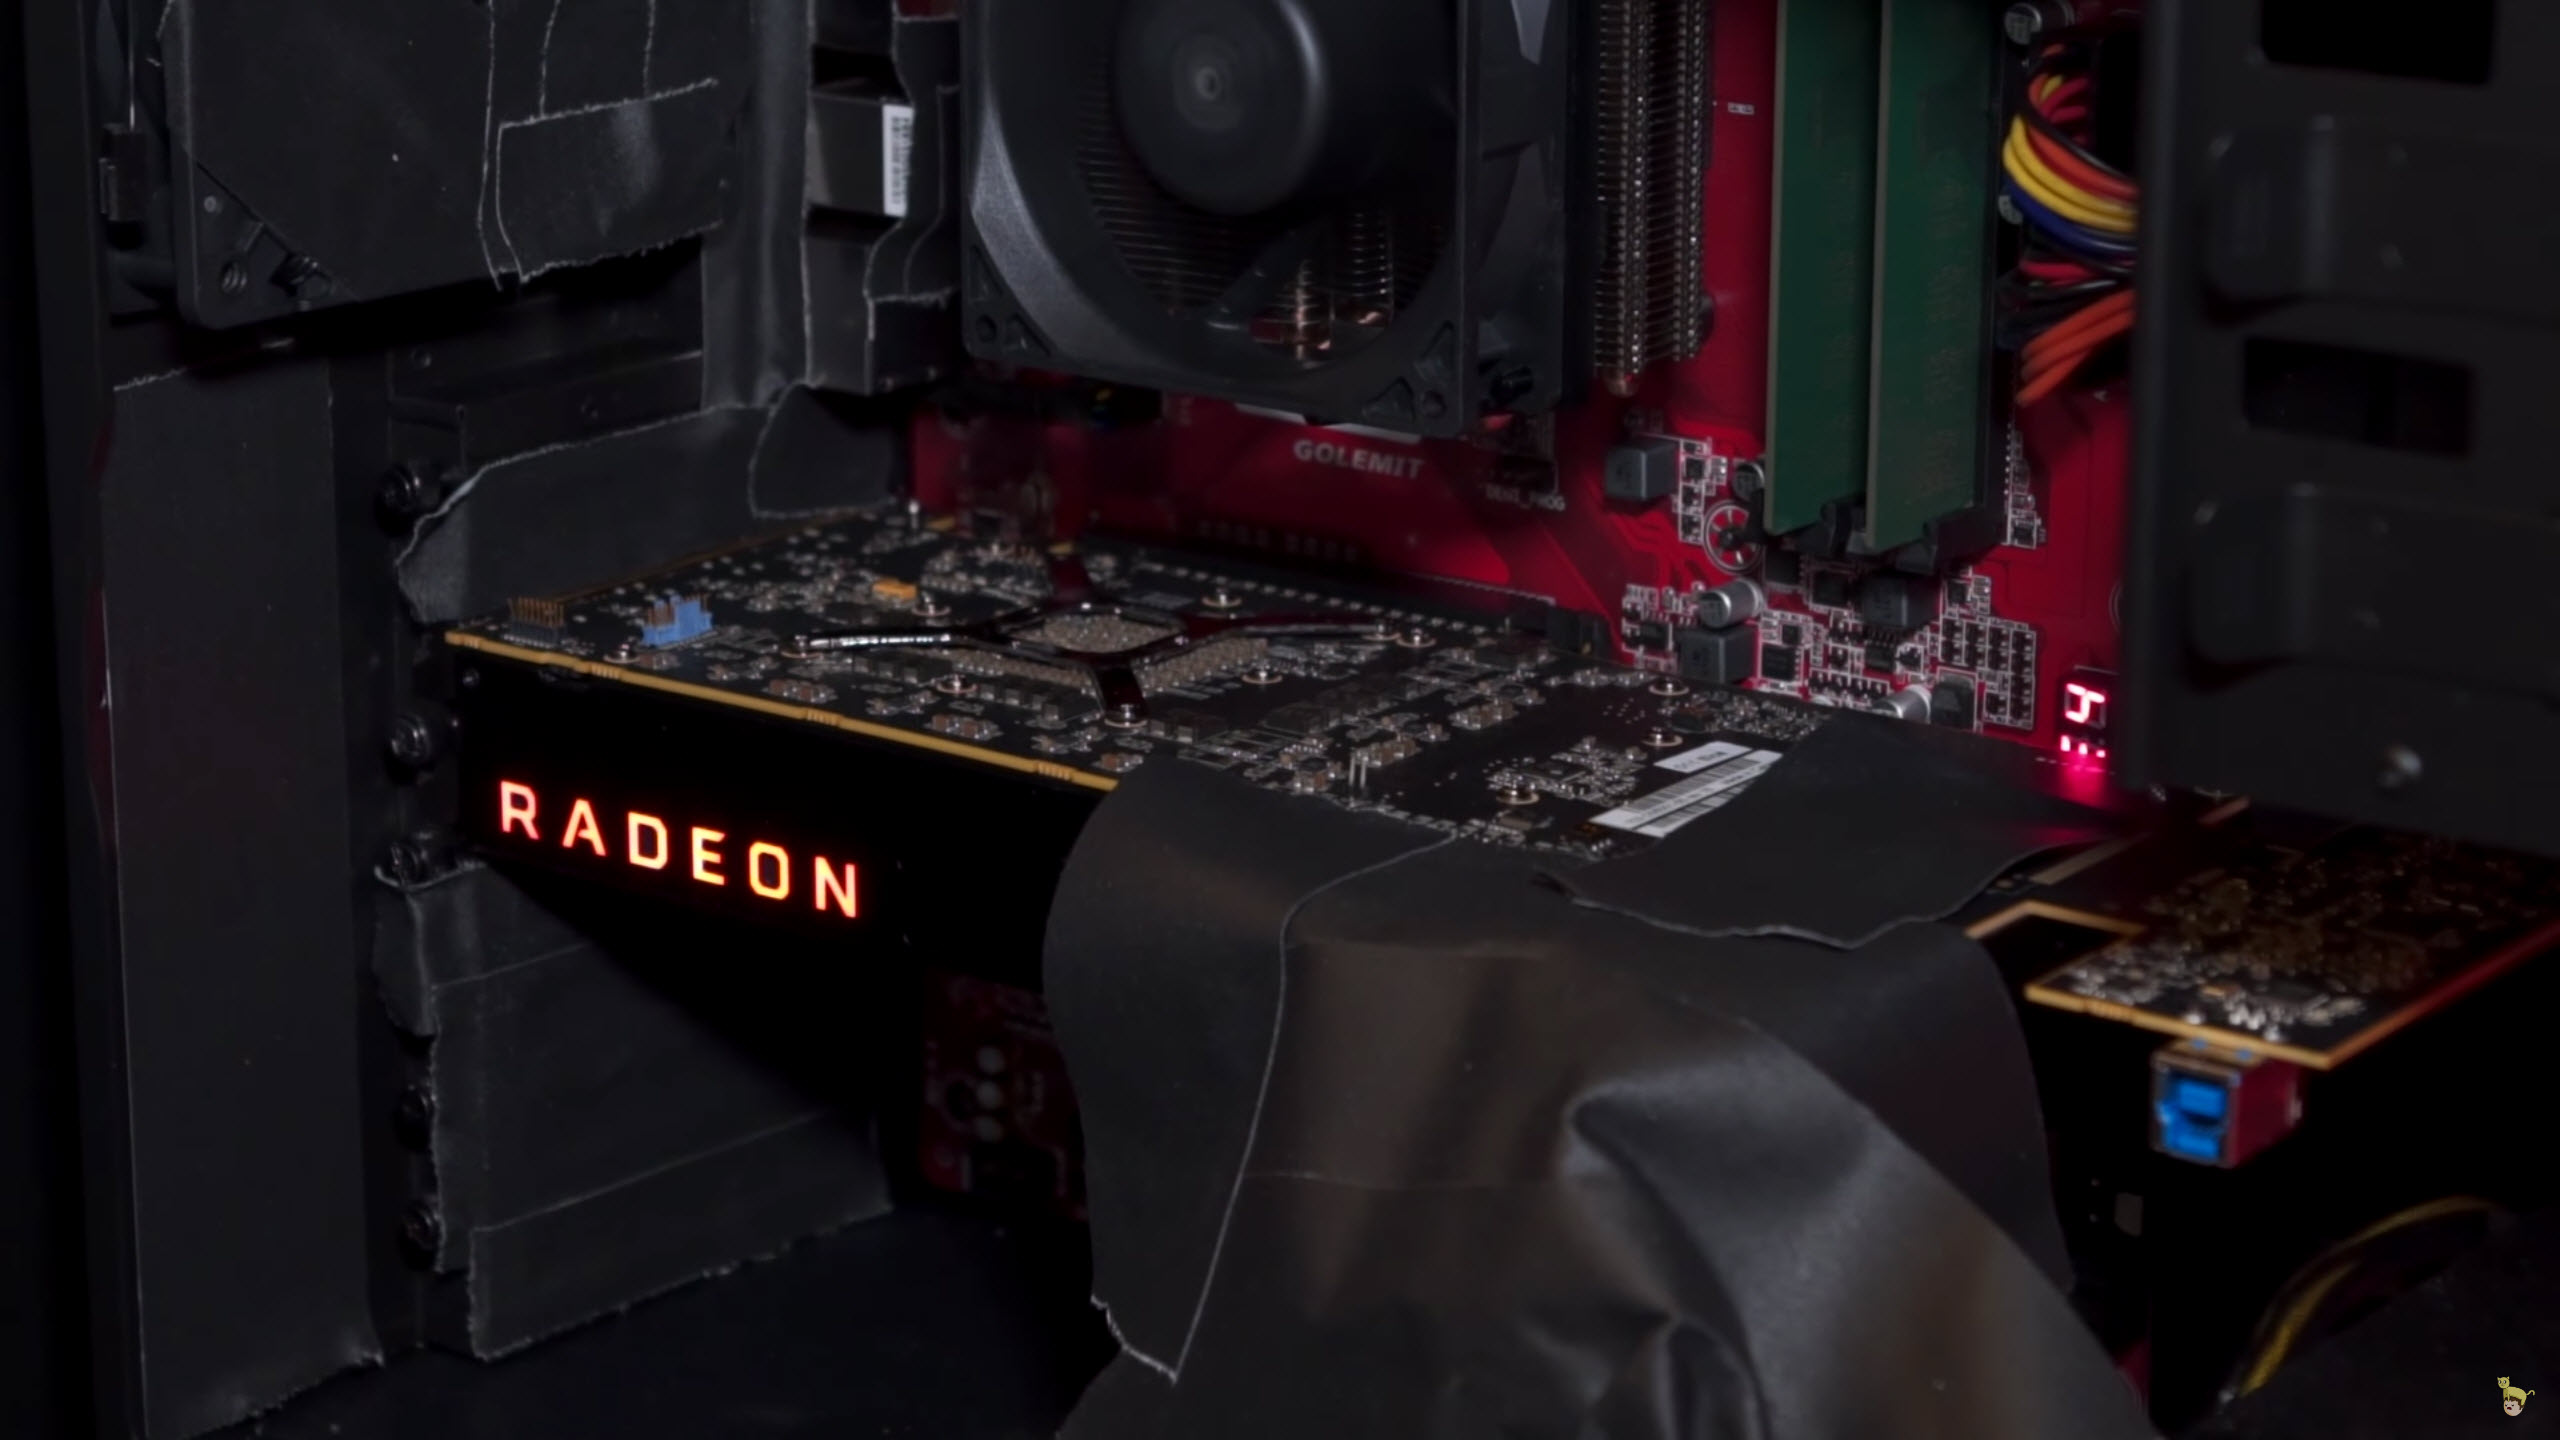 Amd Radeon Rx 500 Series Confirmed To Feature Vega 10 And Vega 11